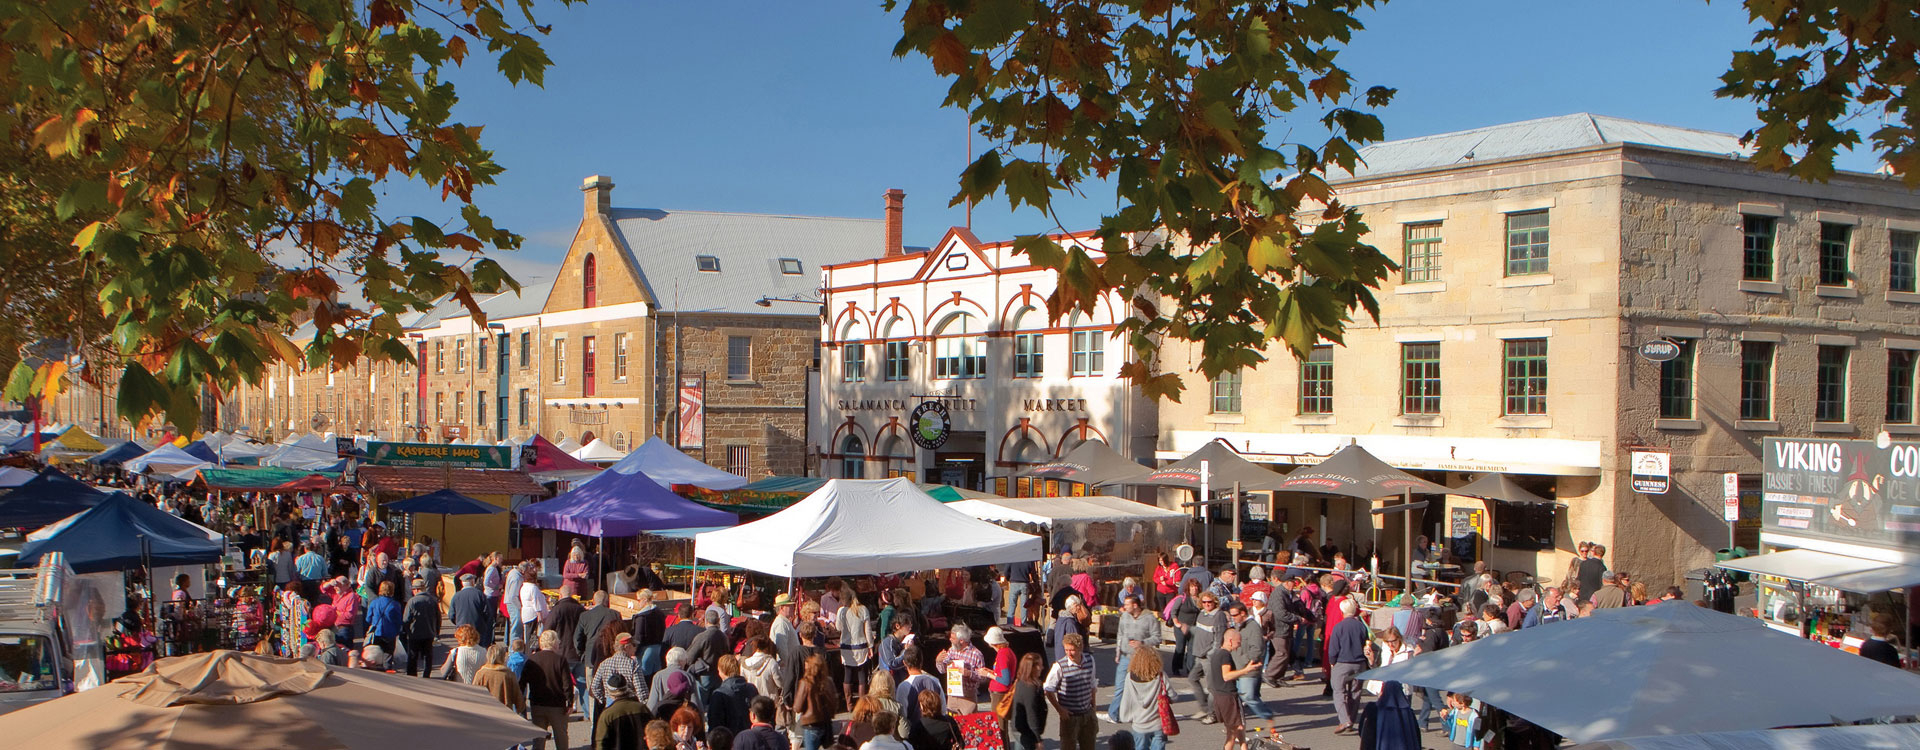 Salamanca Markets and restaurants are an easy 10 min walk from Grosvenor Court Apartments